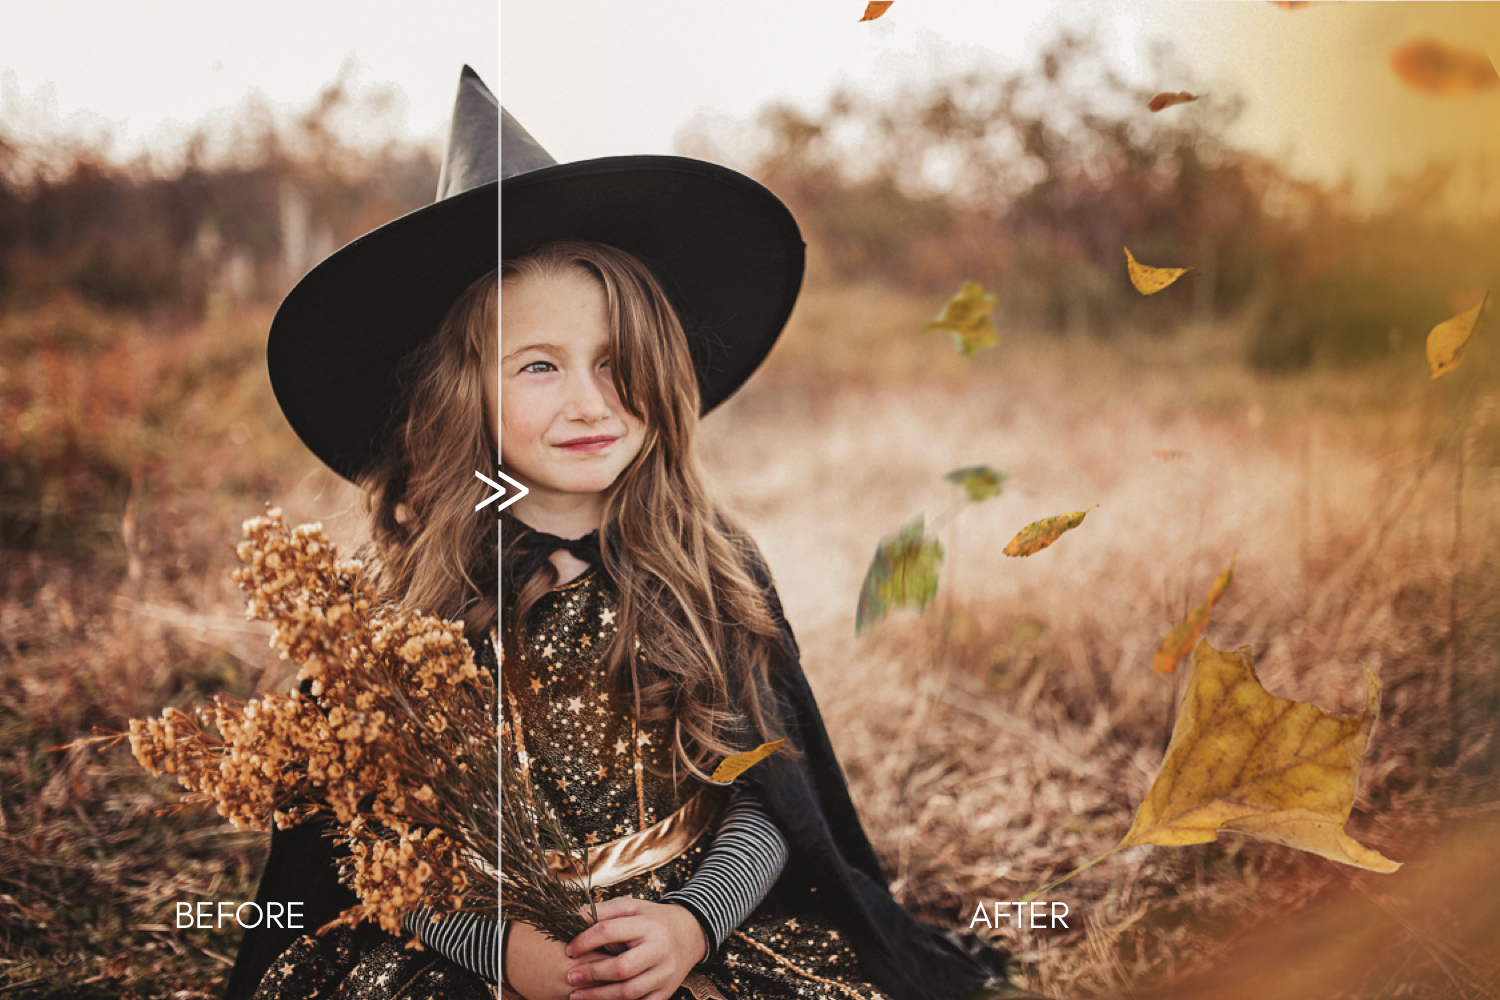 70 Natural Falling Autumn Leaves Photoshop Overlays - autumn falling leaves photoshop photography overlays 4 -